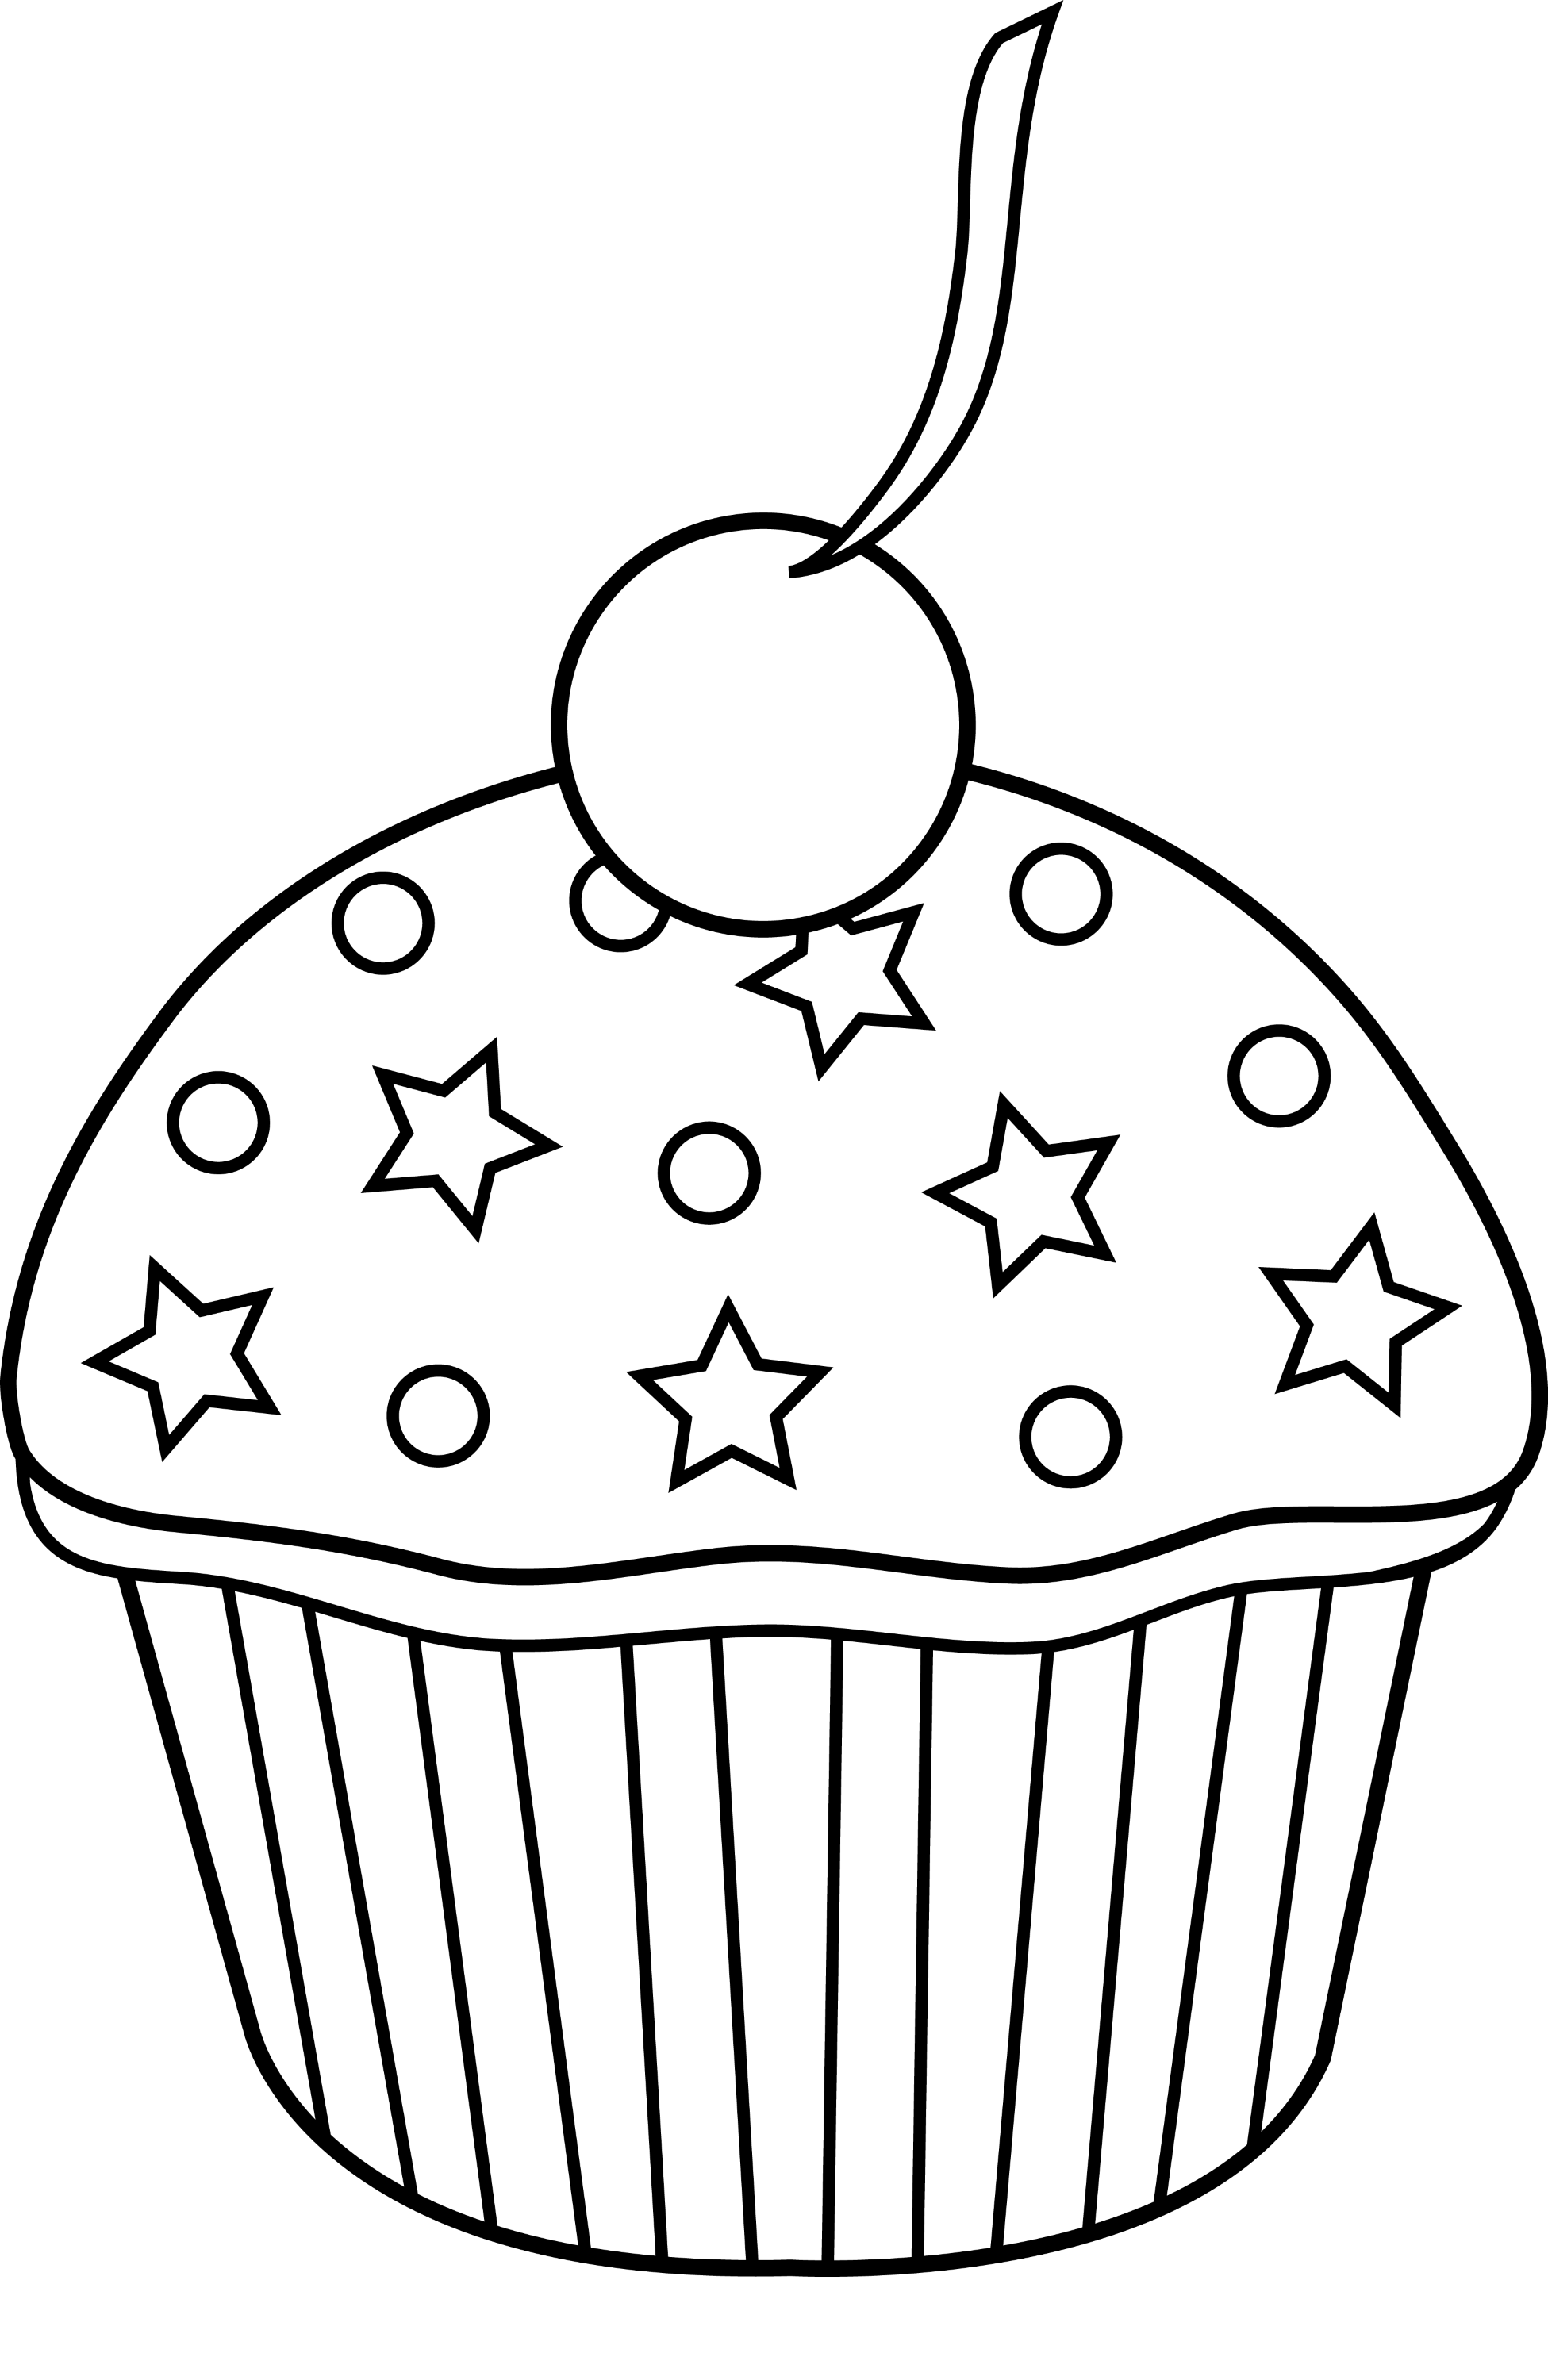 Cute Colorable Cupcake Design - Free Clip Art